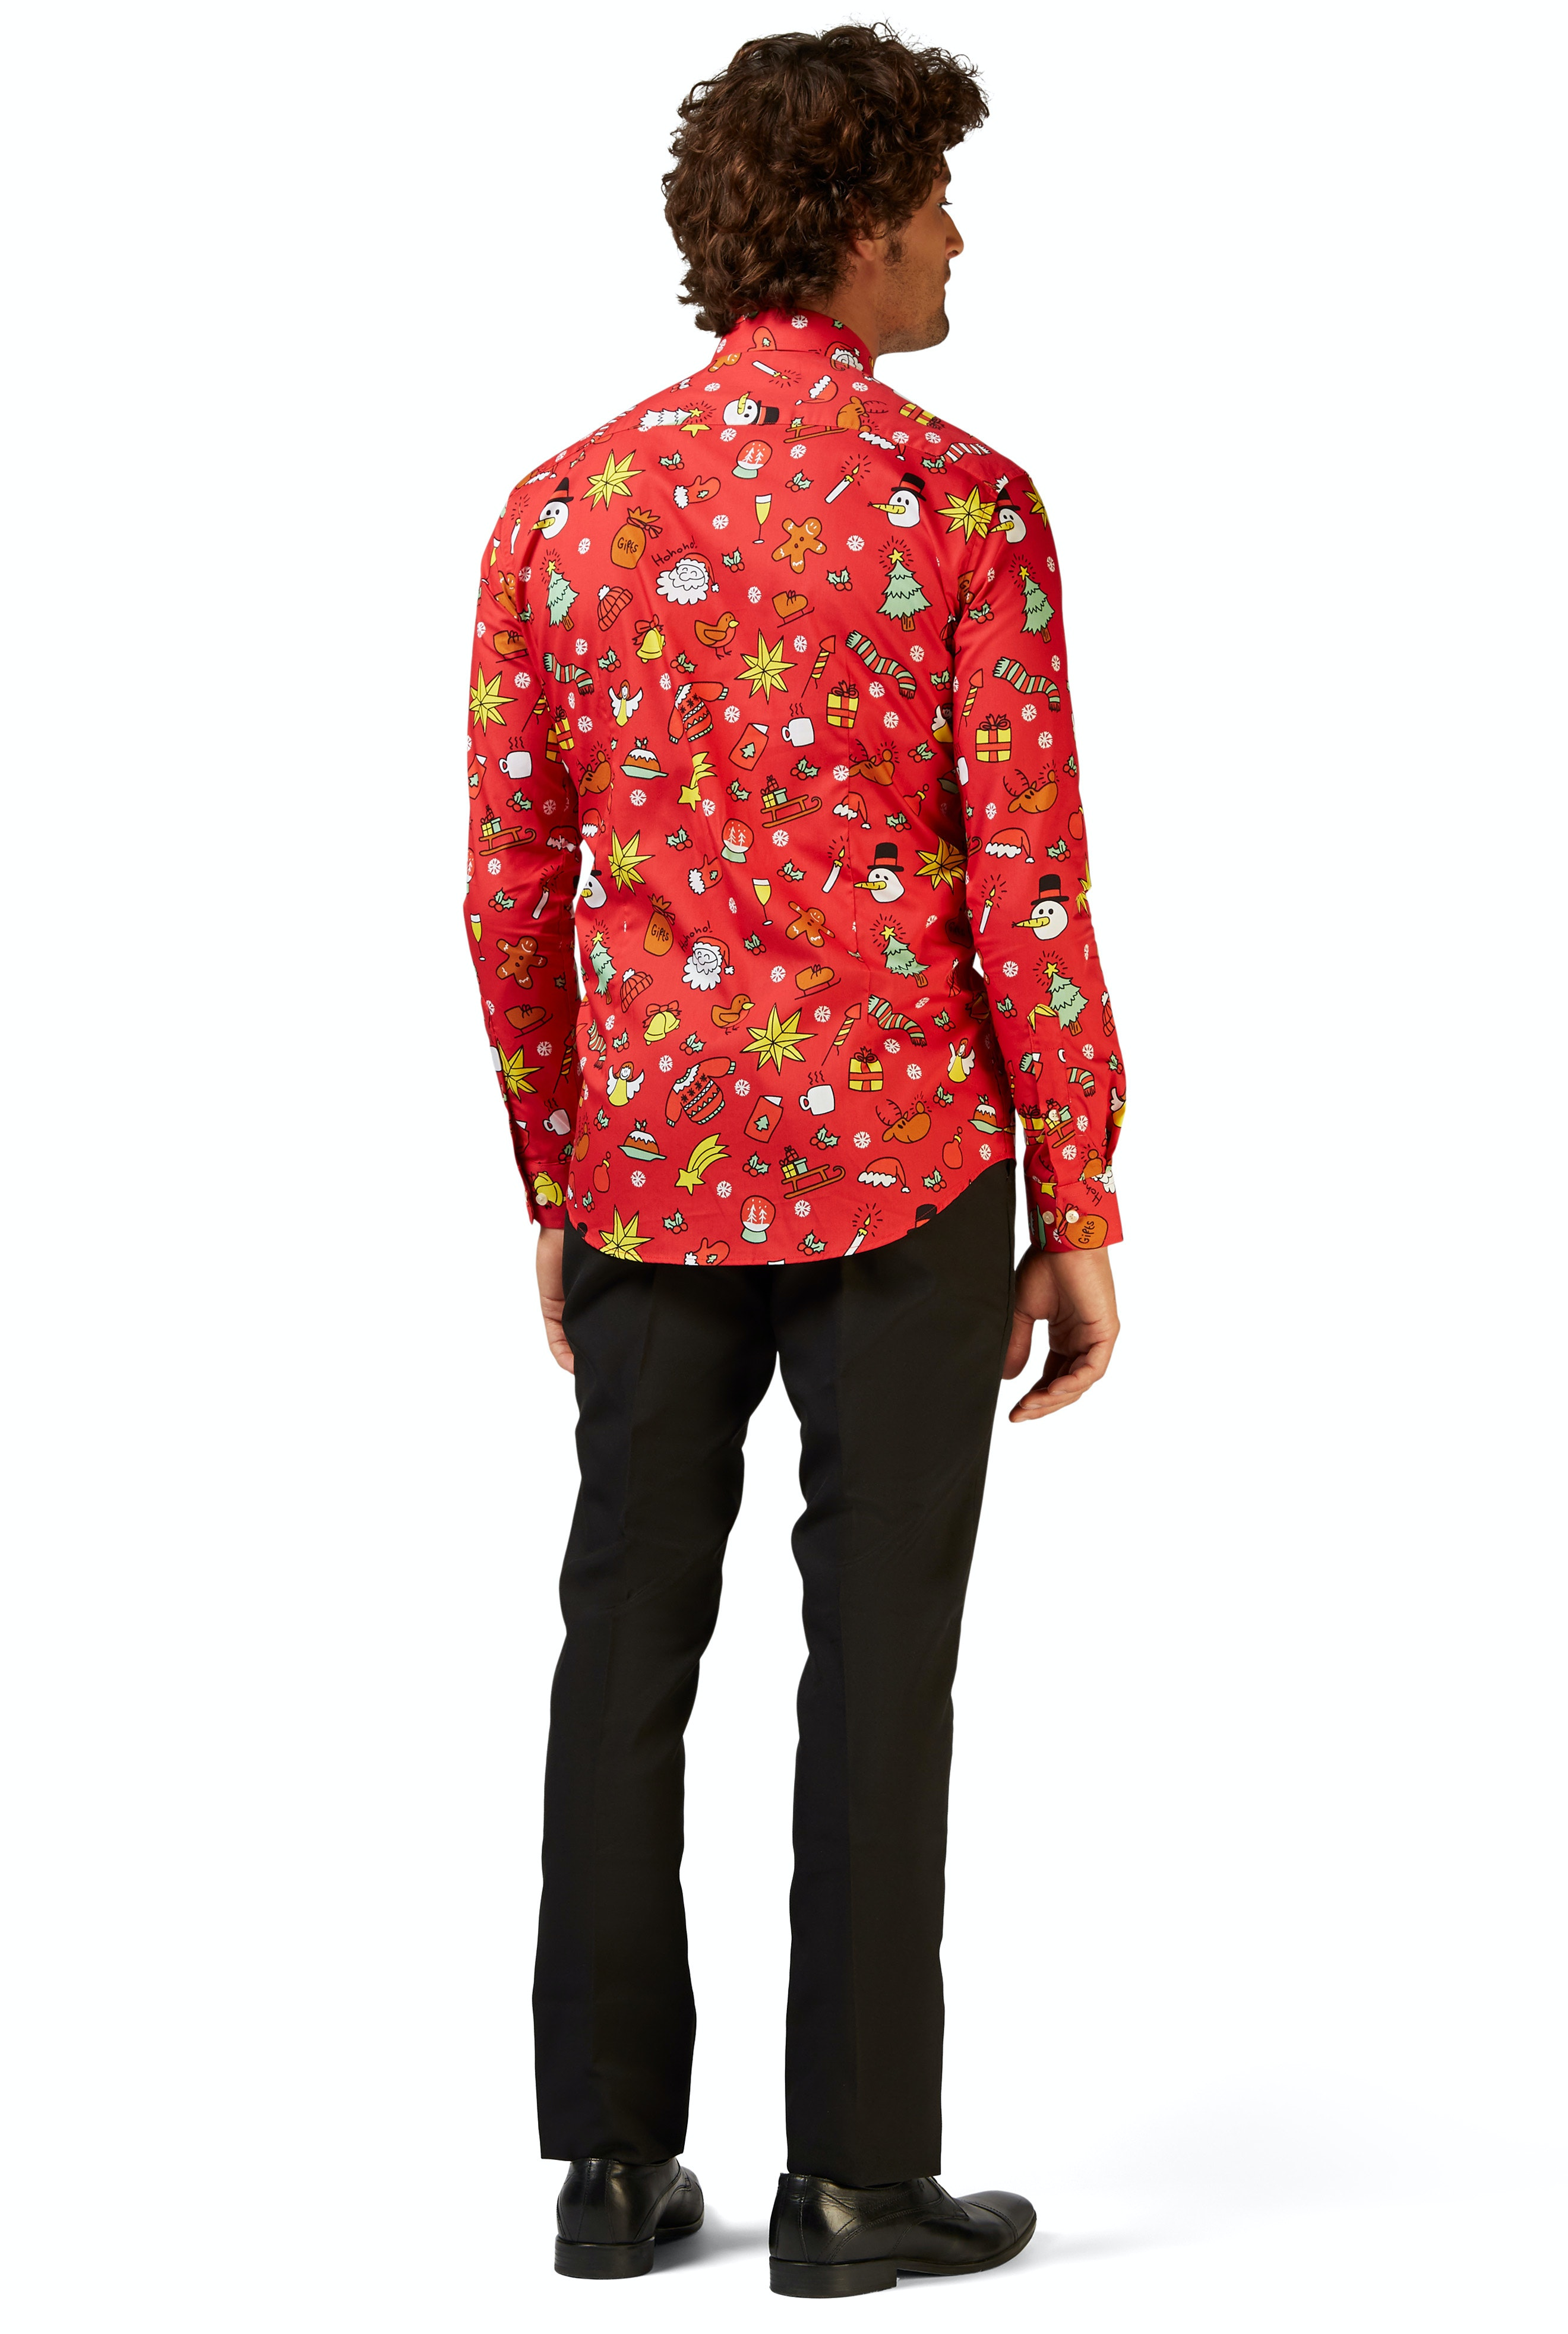 Opposuits Christmas Doodle Red Grappig rood kerst shirt